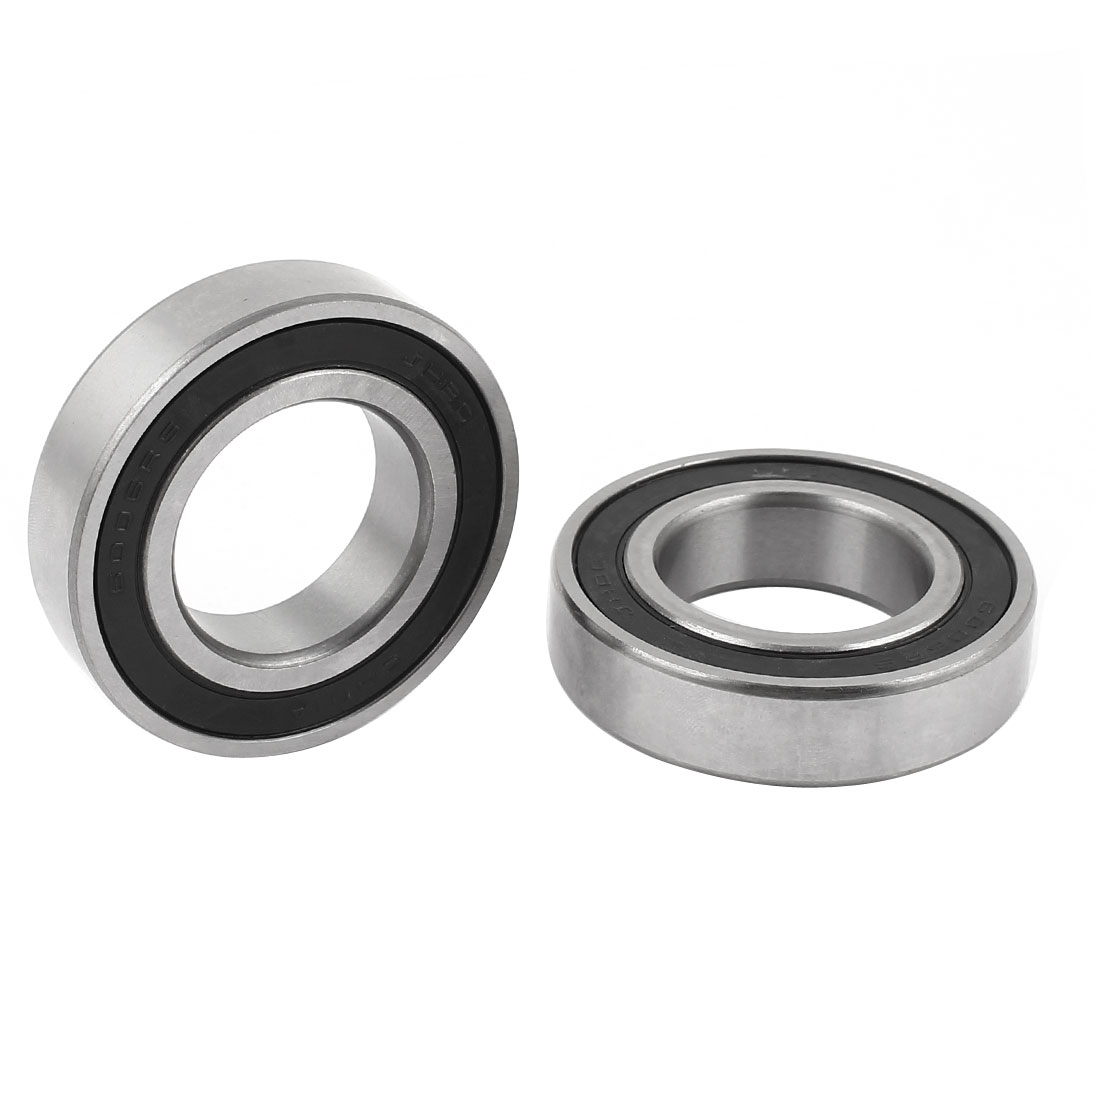 2 Pcs 30mm x 55mm x 13mm Seal Deep Groove Ball Wheel Bearing 6006